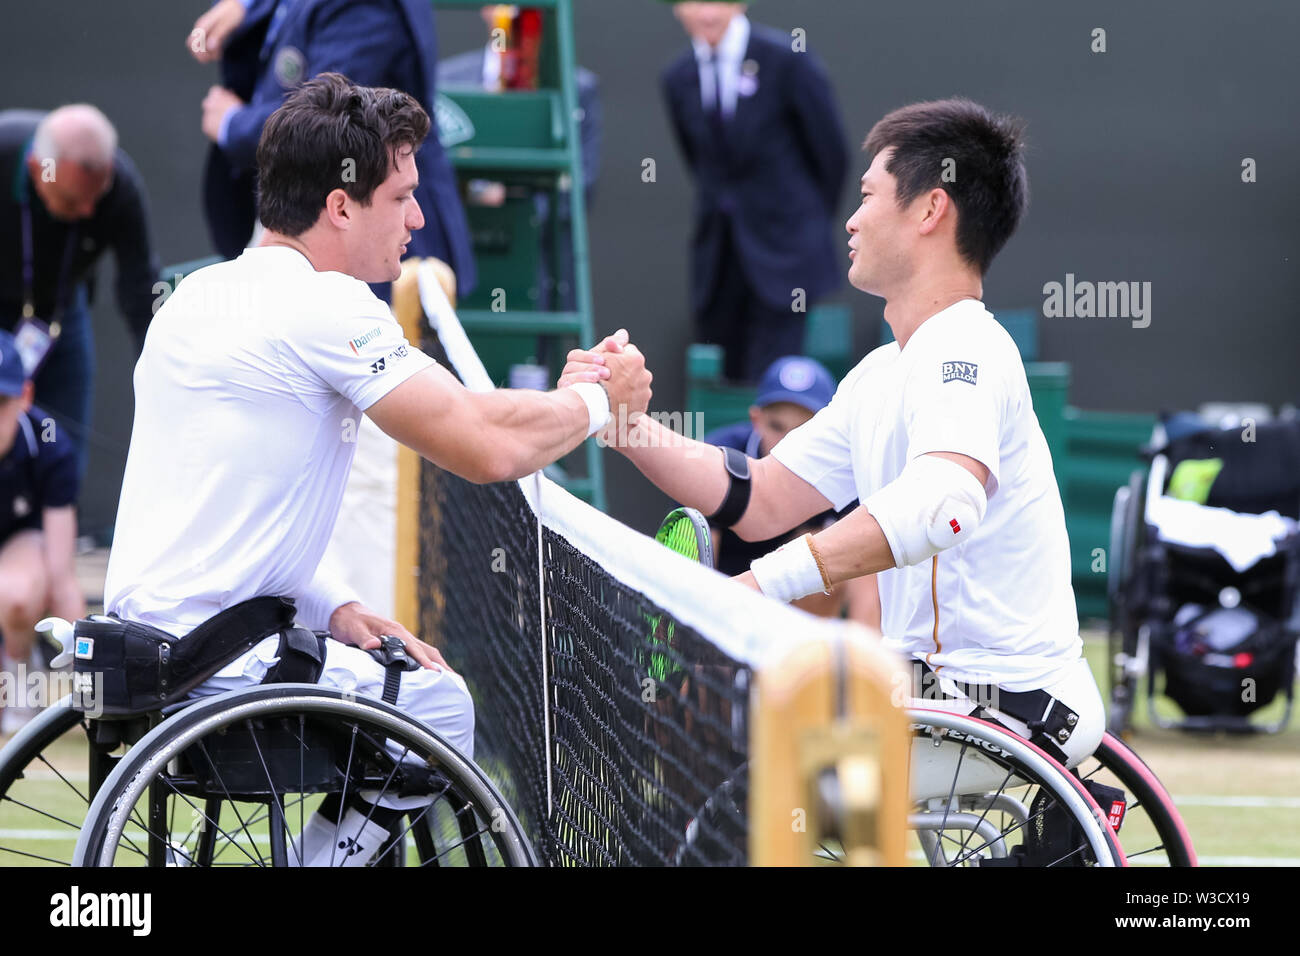 Wimbledon, London, UK. 14th July 2019. Shingo Kunieda of Japan and Gustavo Fernandez of Argentina greet each other after the men's wheelchair singles final match of the Wimbledon Lawn Tennis Championships at the All England Lawn Tennis and Croquet Club in London, England on July 14, 2019. Credit: AFLO/Alamy Live News - Stock Image